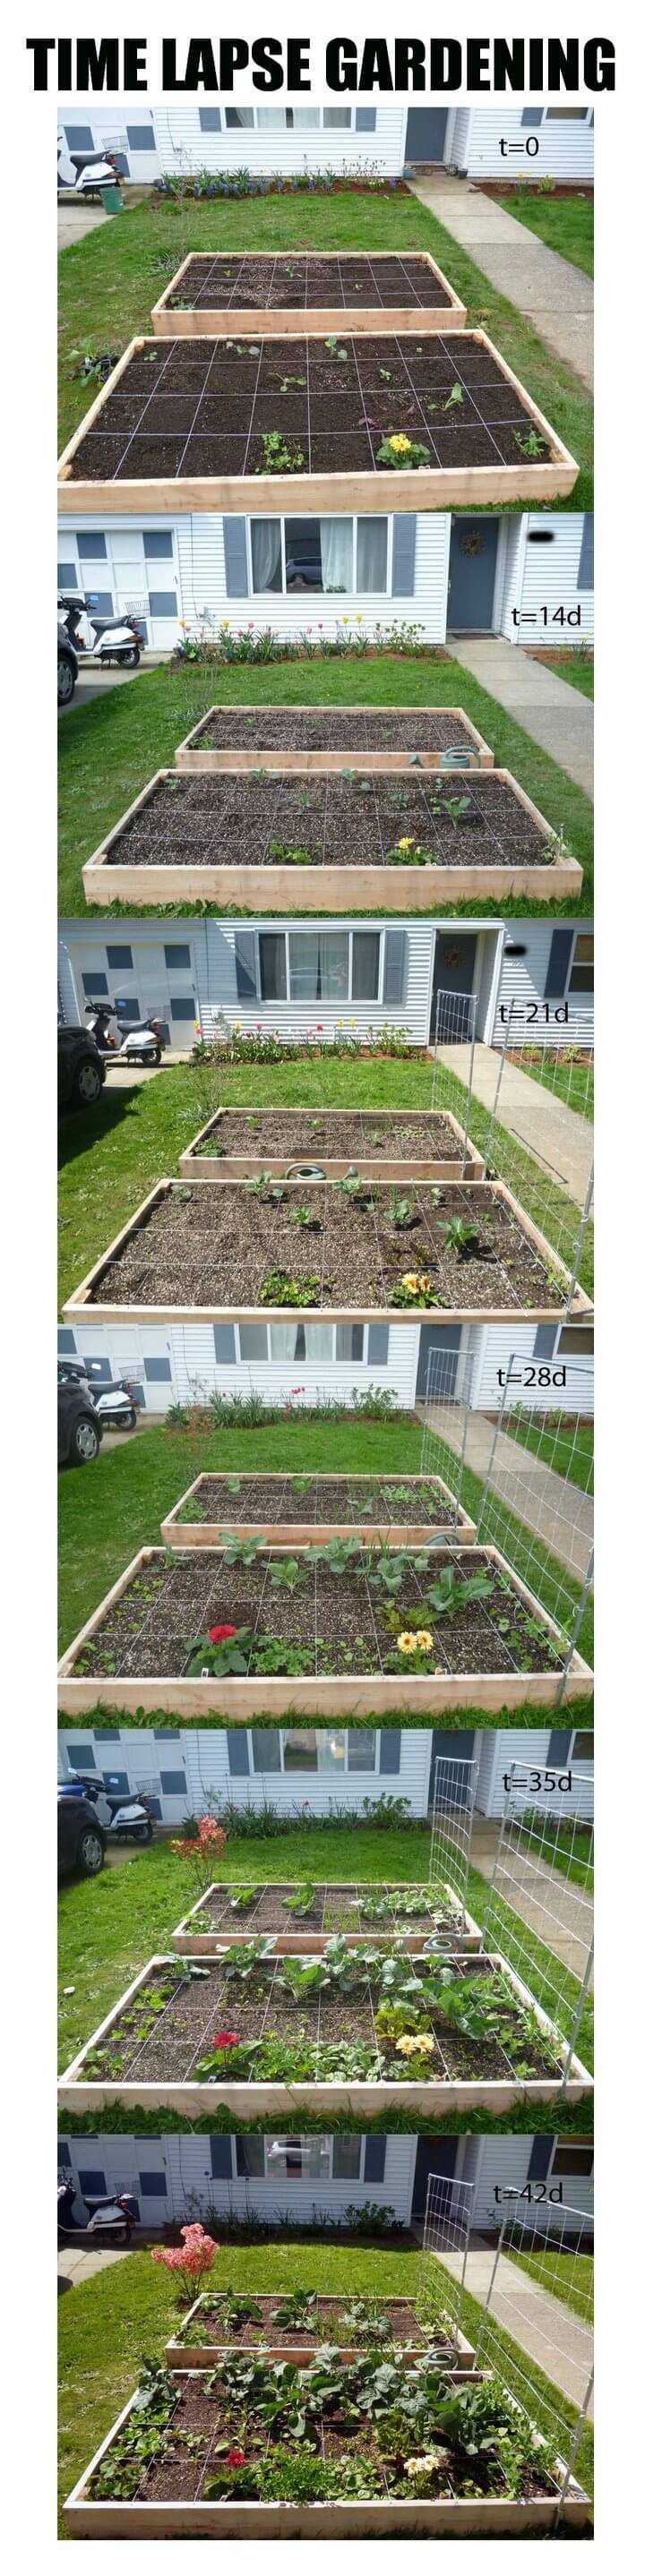 Raised Bed for under $50 | How to Build a Raised Vegetable Garden Bed | 39+ Simple & Cheap Raised Vegetable Garden Bed Ideas - farmfoodfamily.com